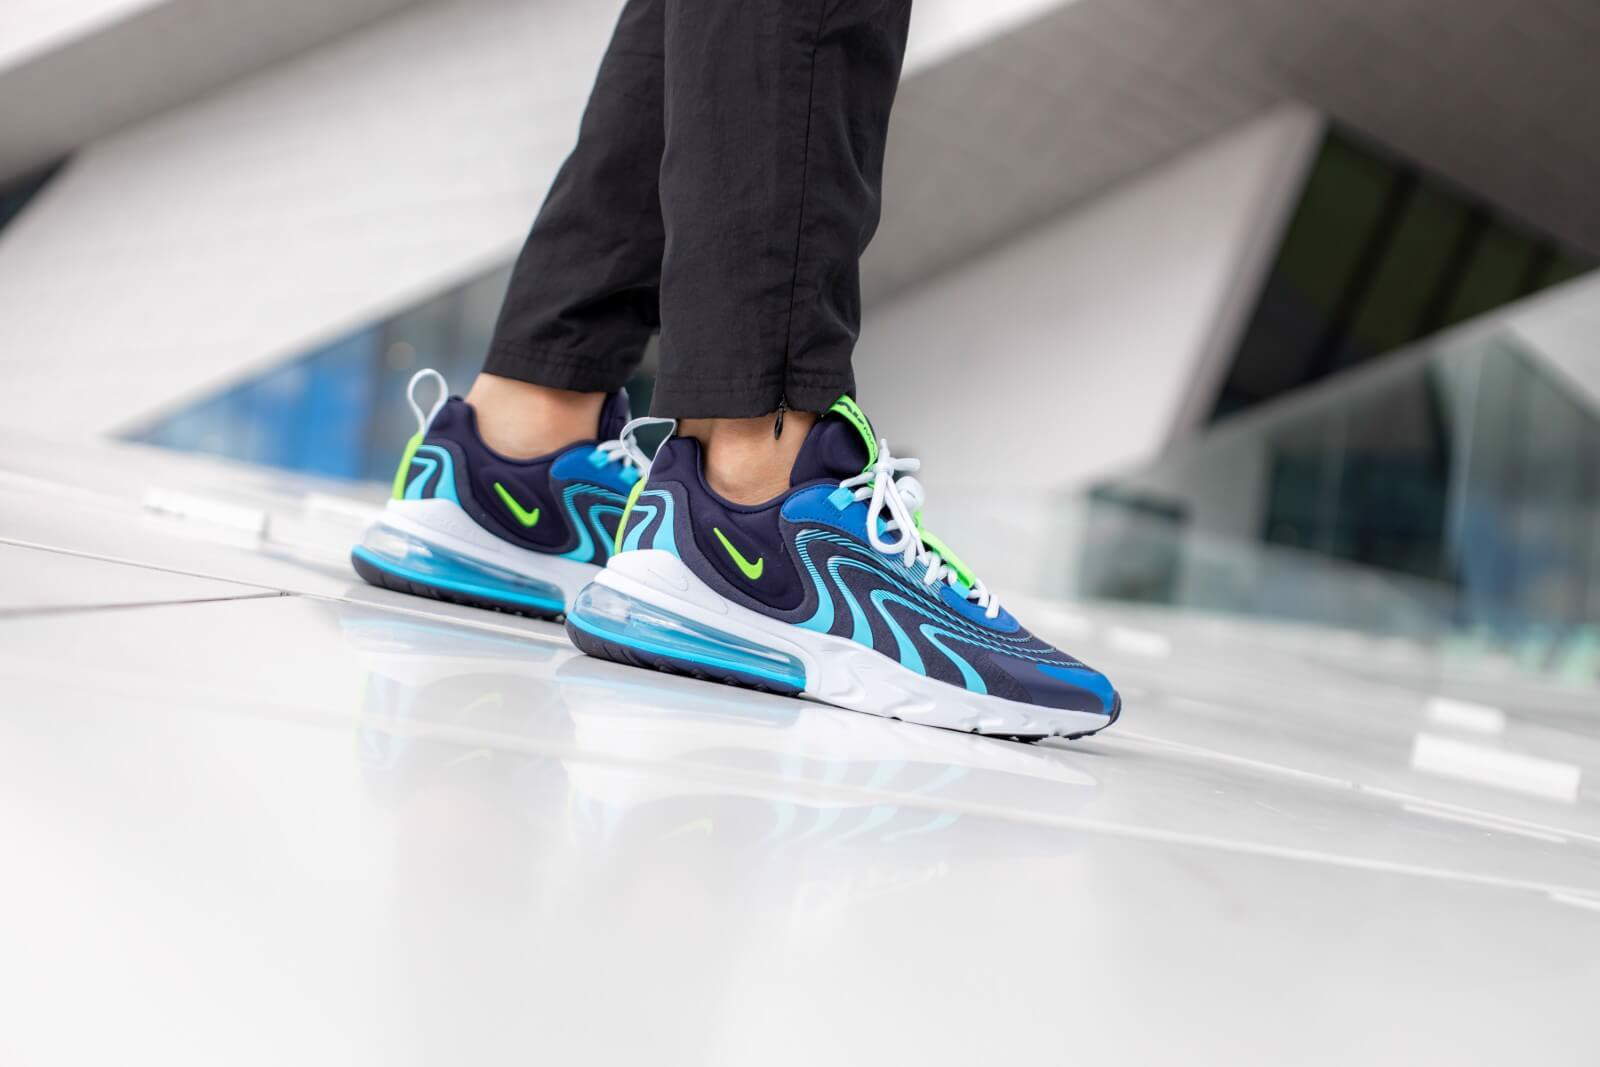 Nike Air Max 270 React ENG 'Blackened Blue' CJ0579-400